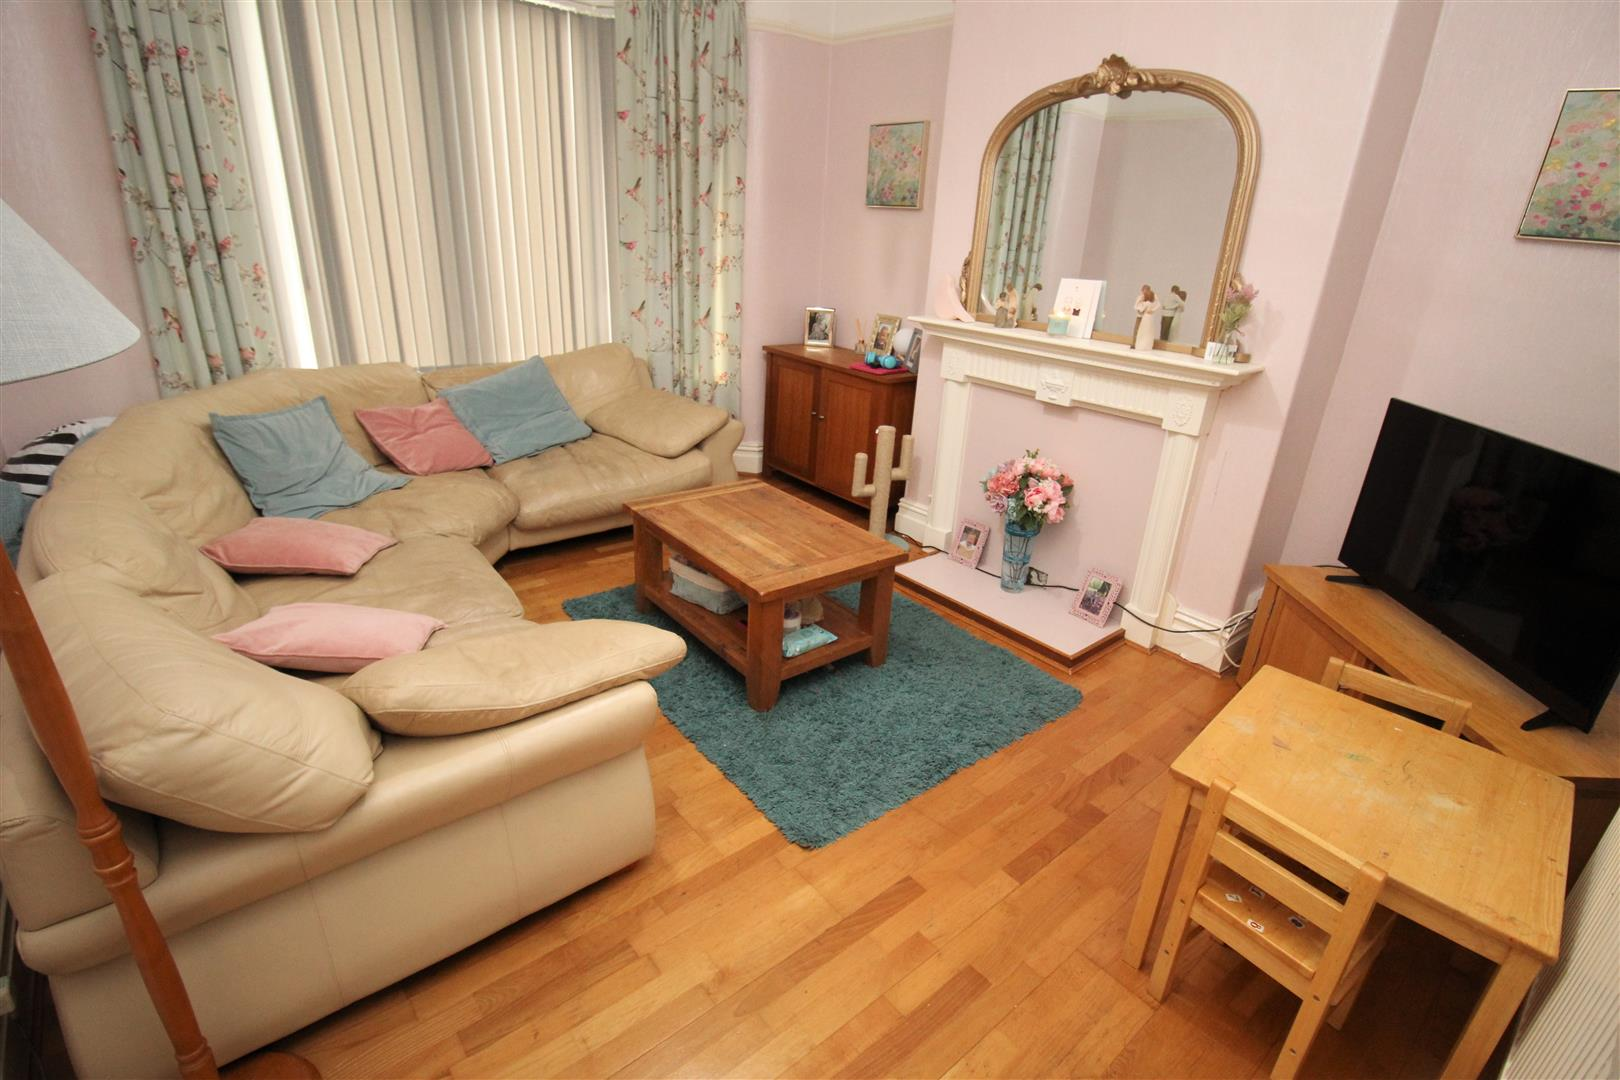 3 Bedrooms, House - Mid Terrace, Tatton Road, Liverpool